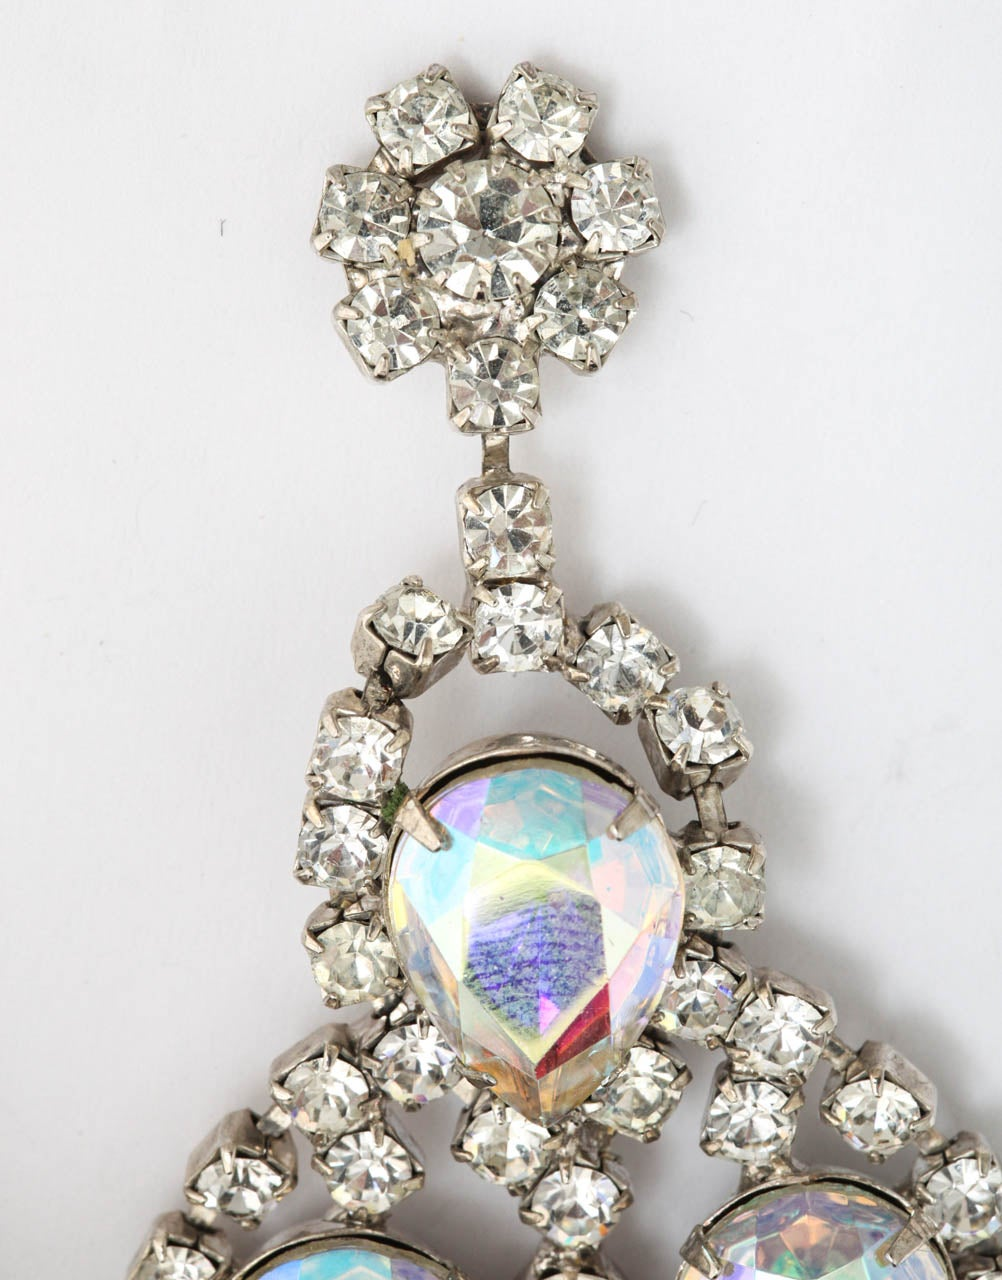 Huge Rhinestone Earrings, Costume Jewelry In Excellent Condition For Sale In Stamford, CT